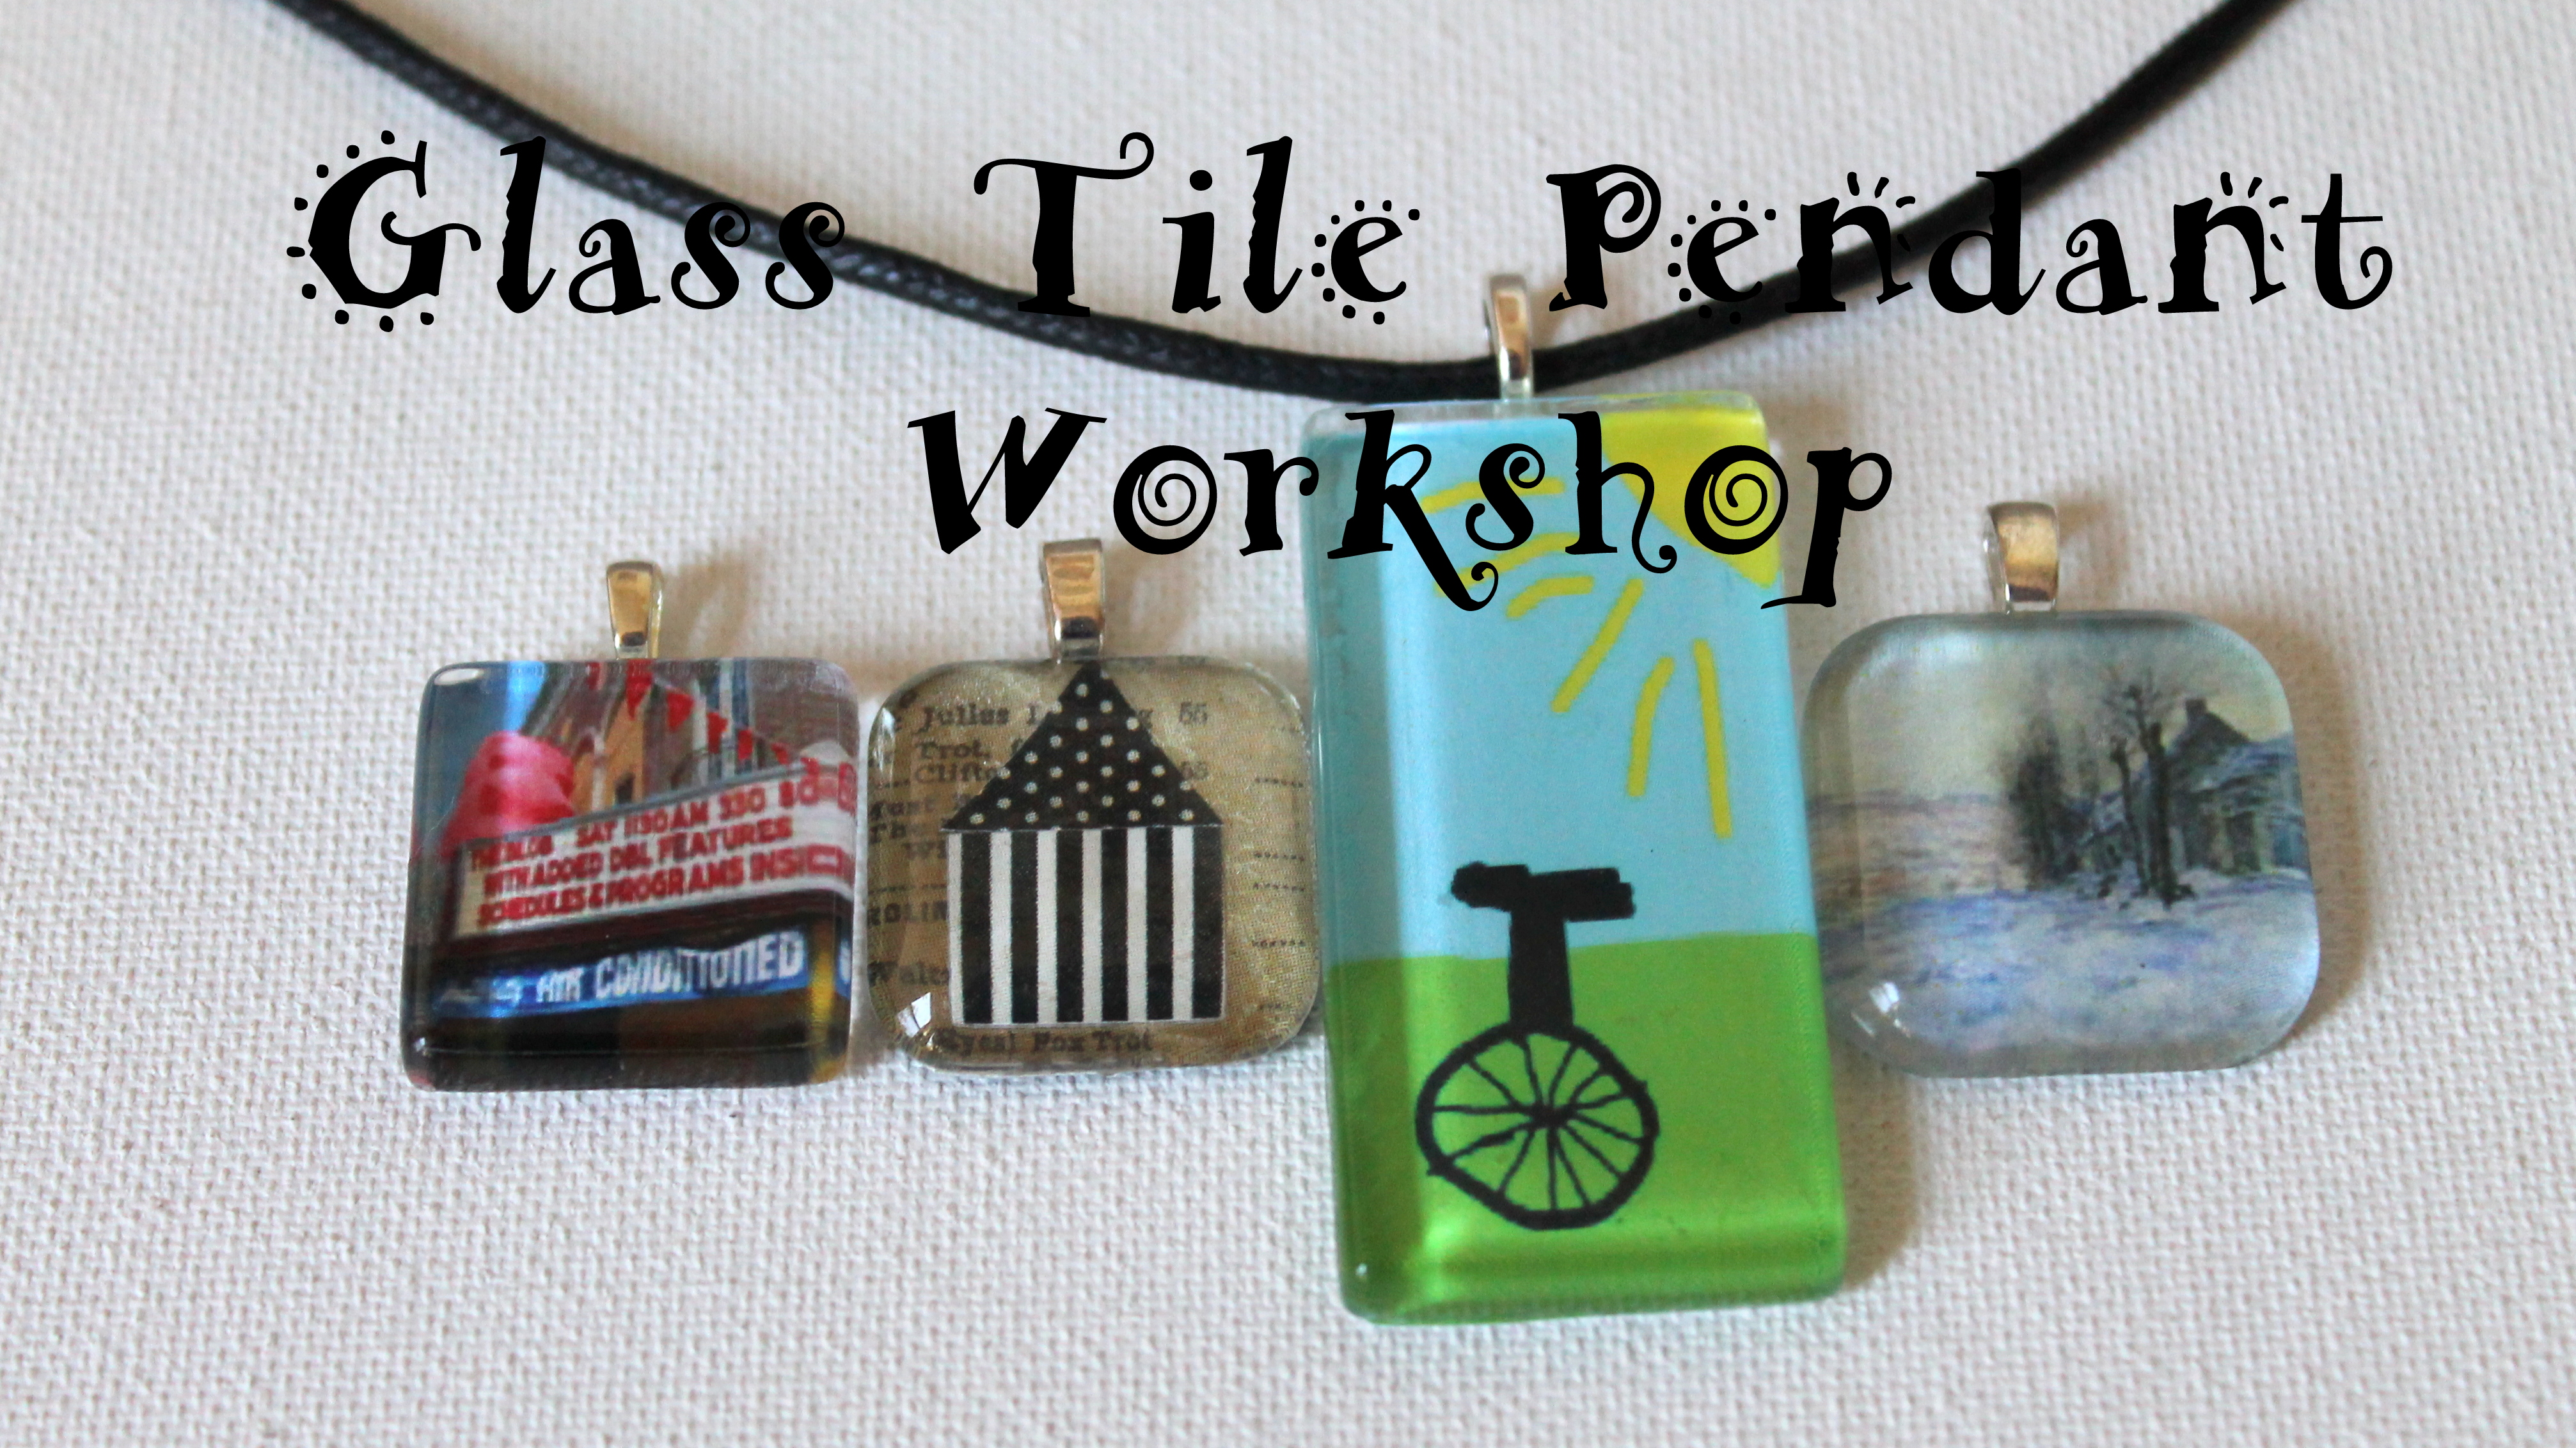 Glass Tile Pendant Workshop